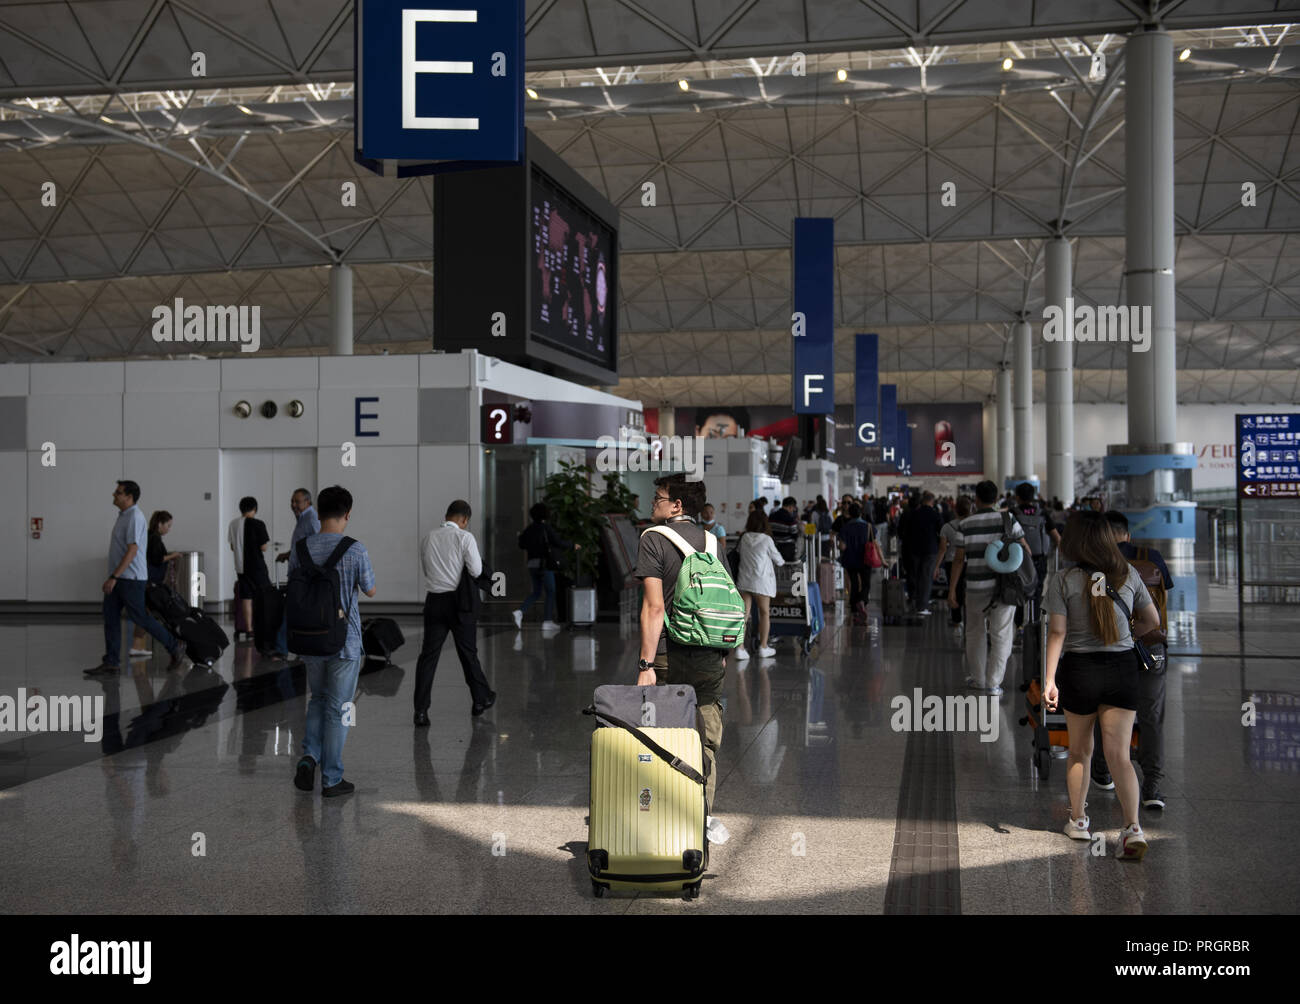 Chek Lap Kok island, Hong Kong. 1st Jan, 2014. Passengers are seen walking through Hong Kong's terminal 1 where different airline check-in desk are located. Credit: Miguel Candela/SOPA Images/ZUMA Wire/Alamy Live News - Stock Image